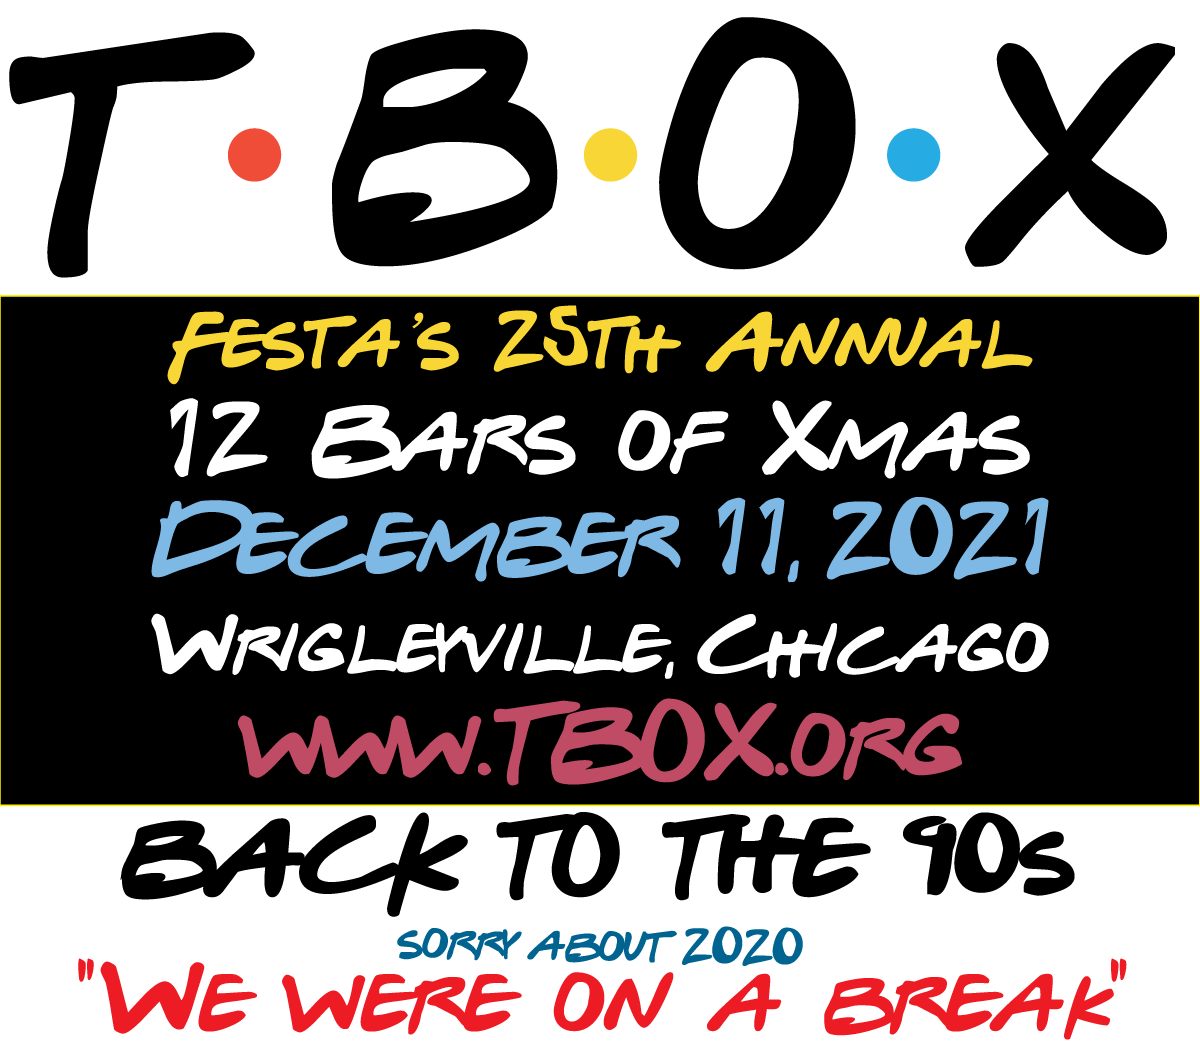 TBOX 2021 - #TBOX2021 - TBOX2021 - Chicago Twelve Bars of Xmas - 90s Themed - 1990s Bar Crawl in Wrigleyville, Chicago Christmas Bar Crawl